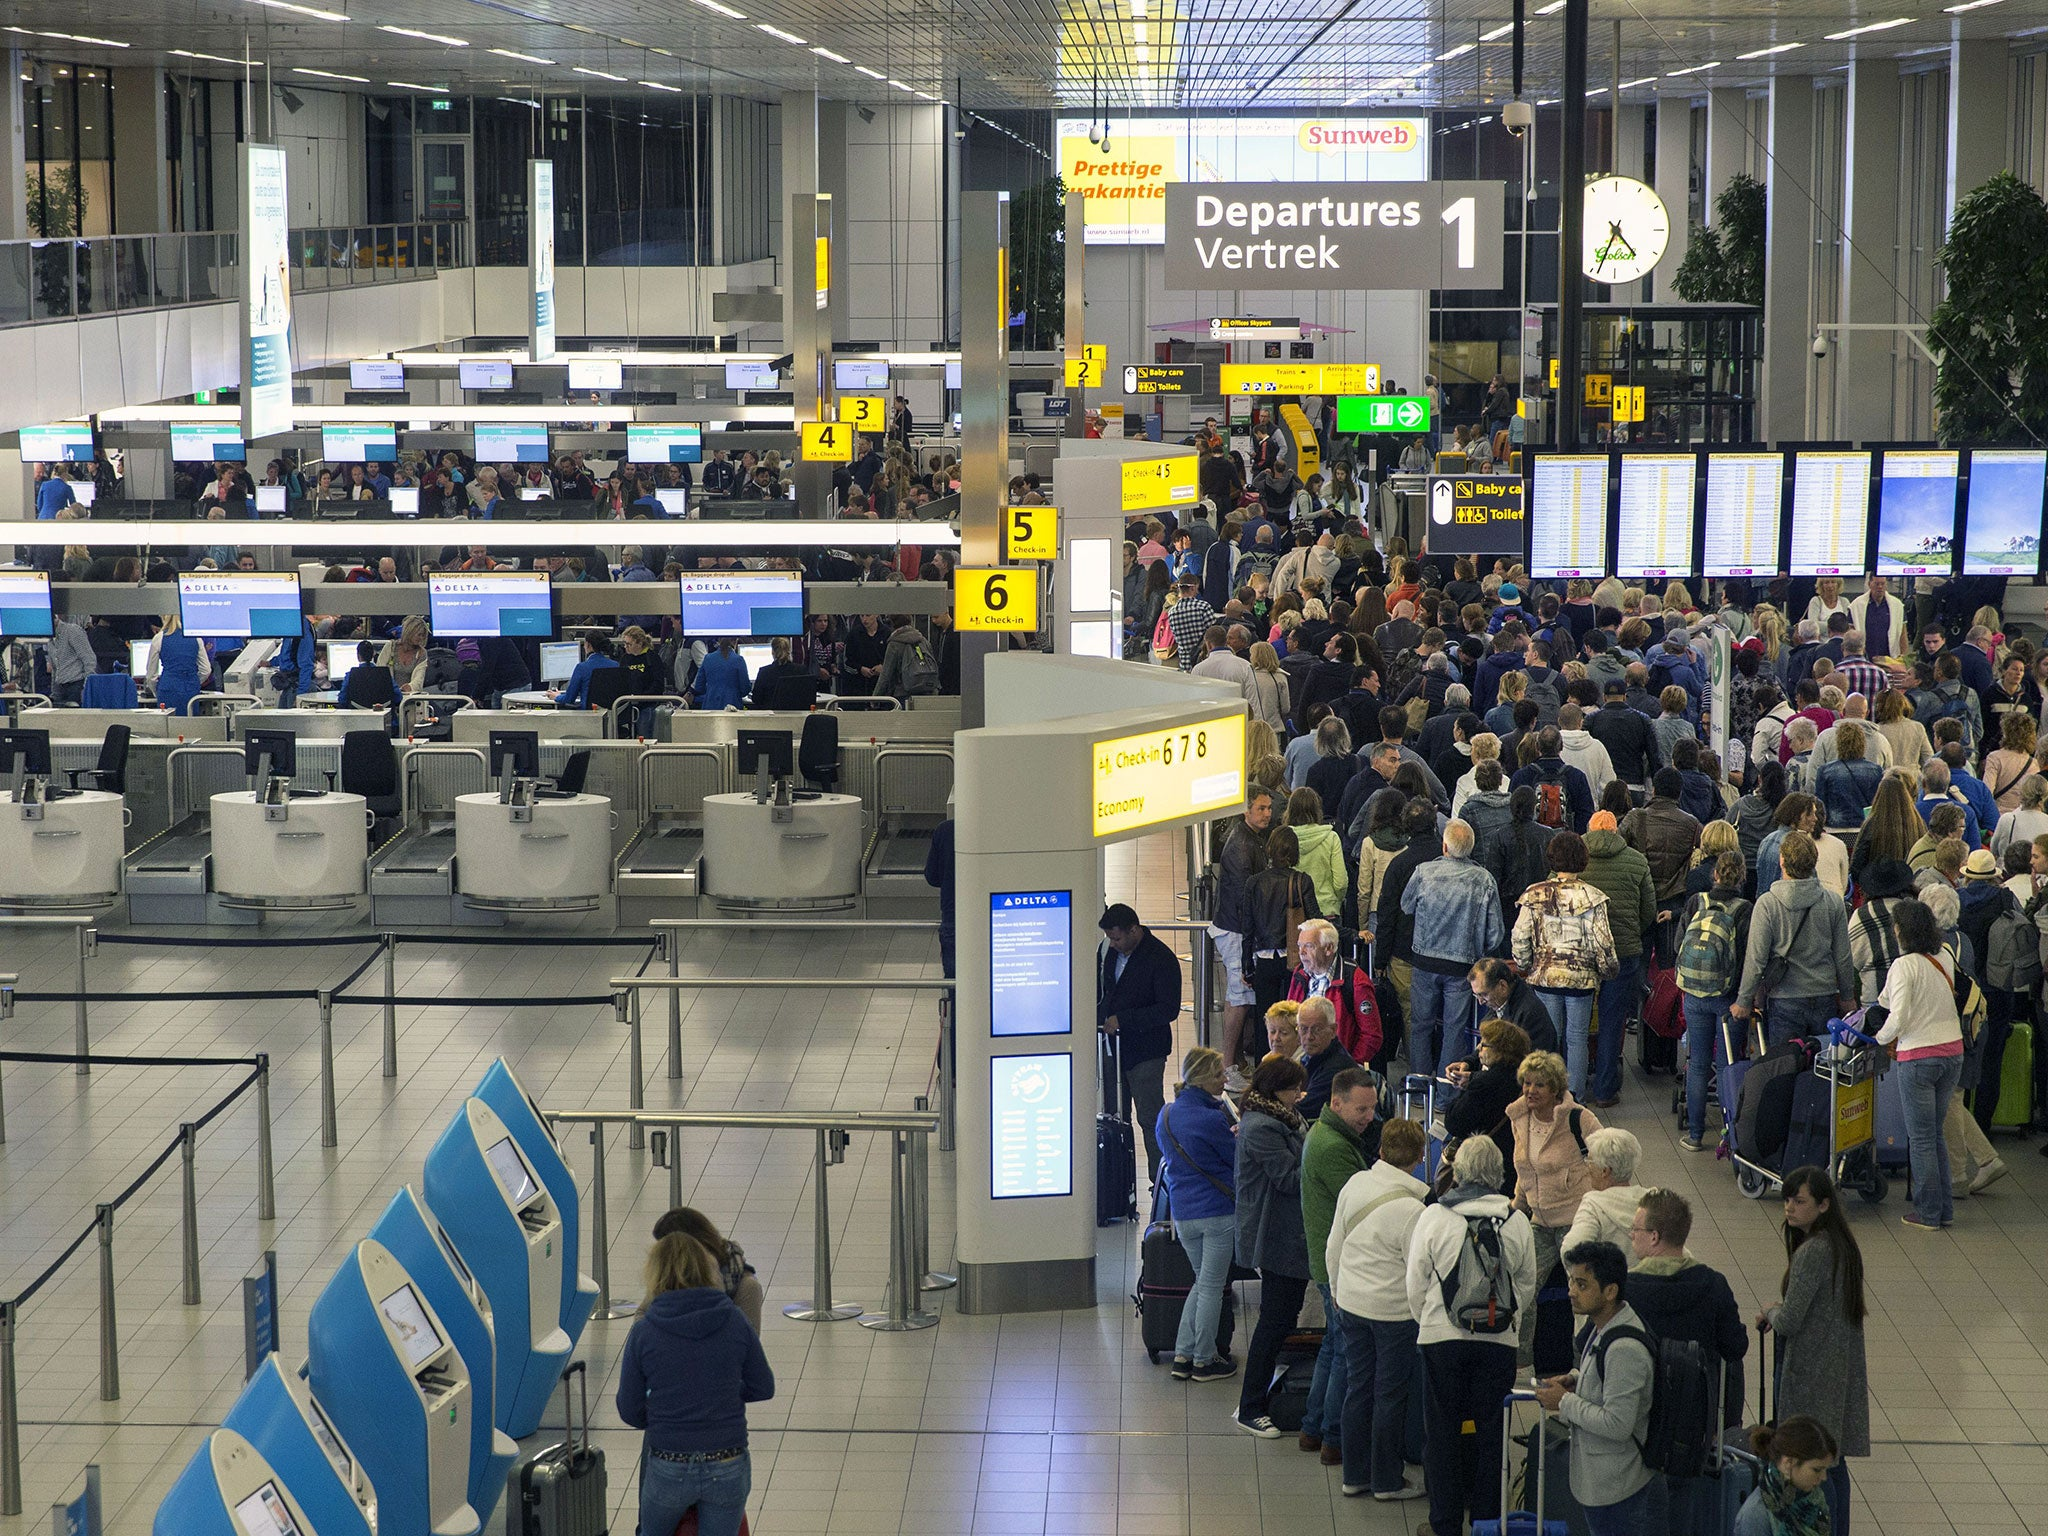 Amsterdam Schiphol airport evacuated over 'British man shouting bomb ...: www.independent.co.uk/news/world/europe/amsterdam-schiphol-airport...